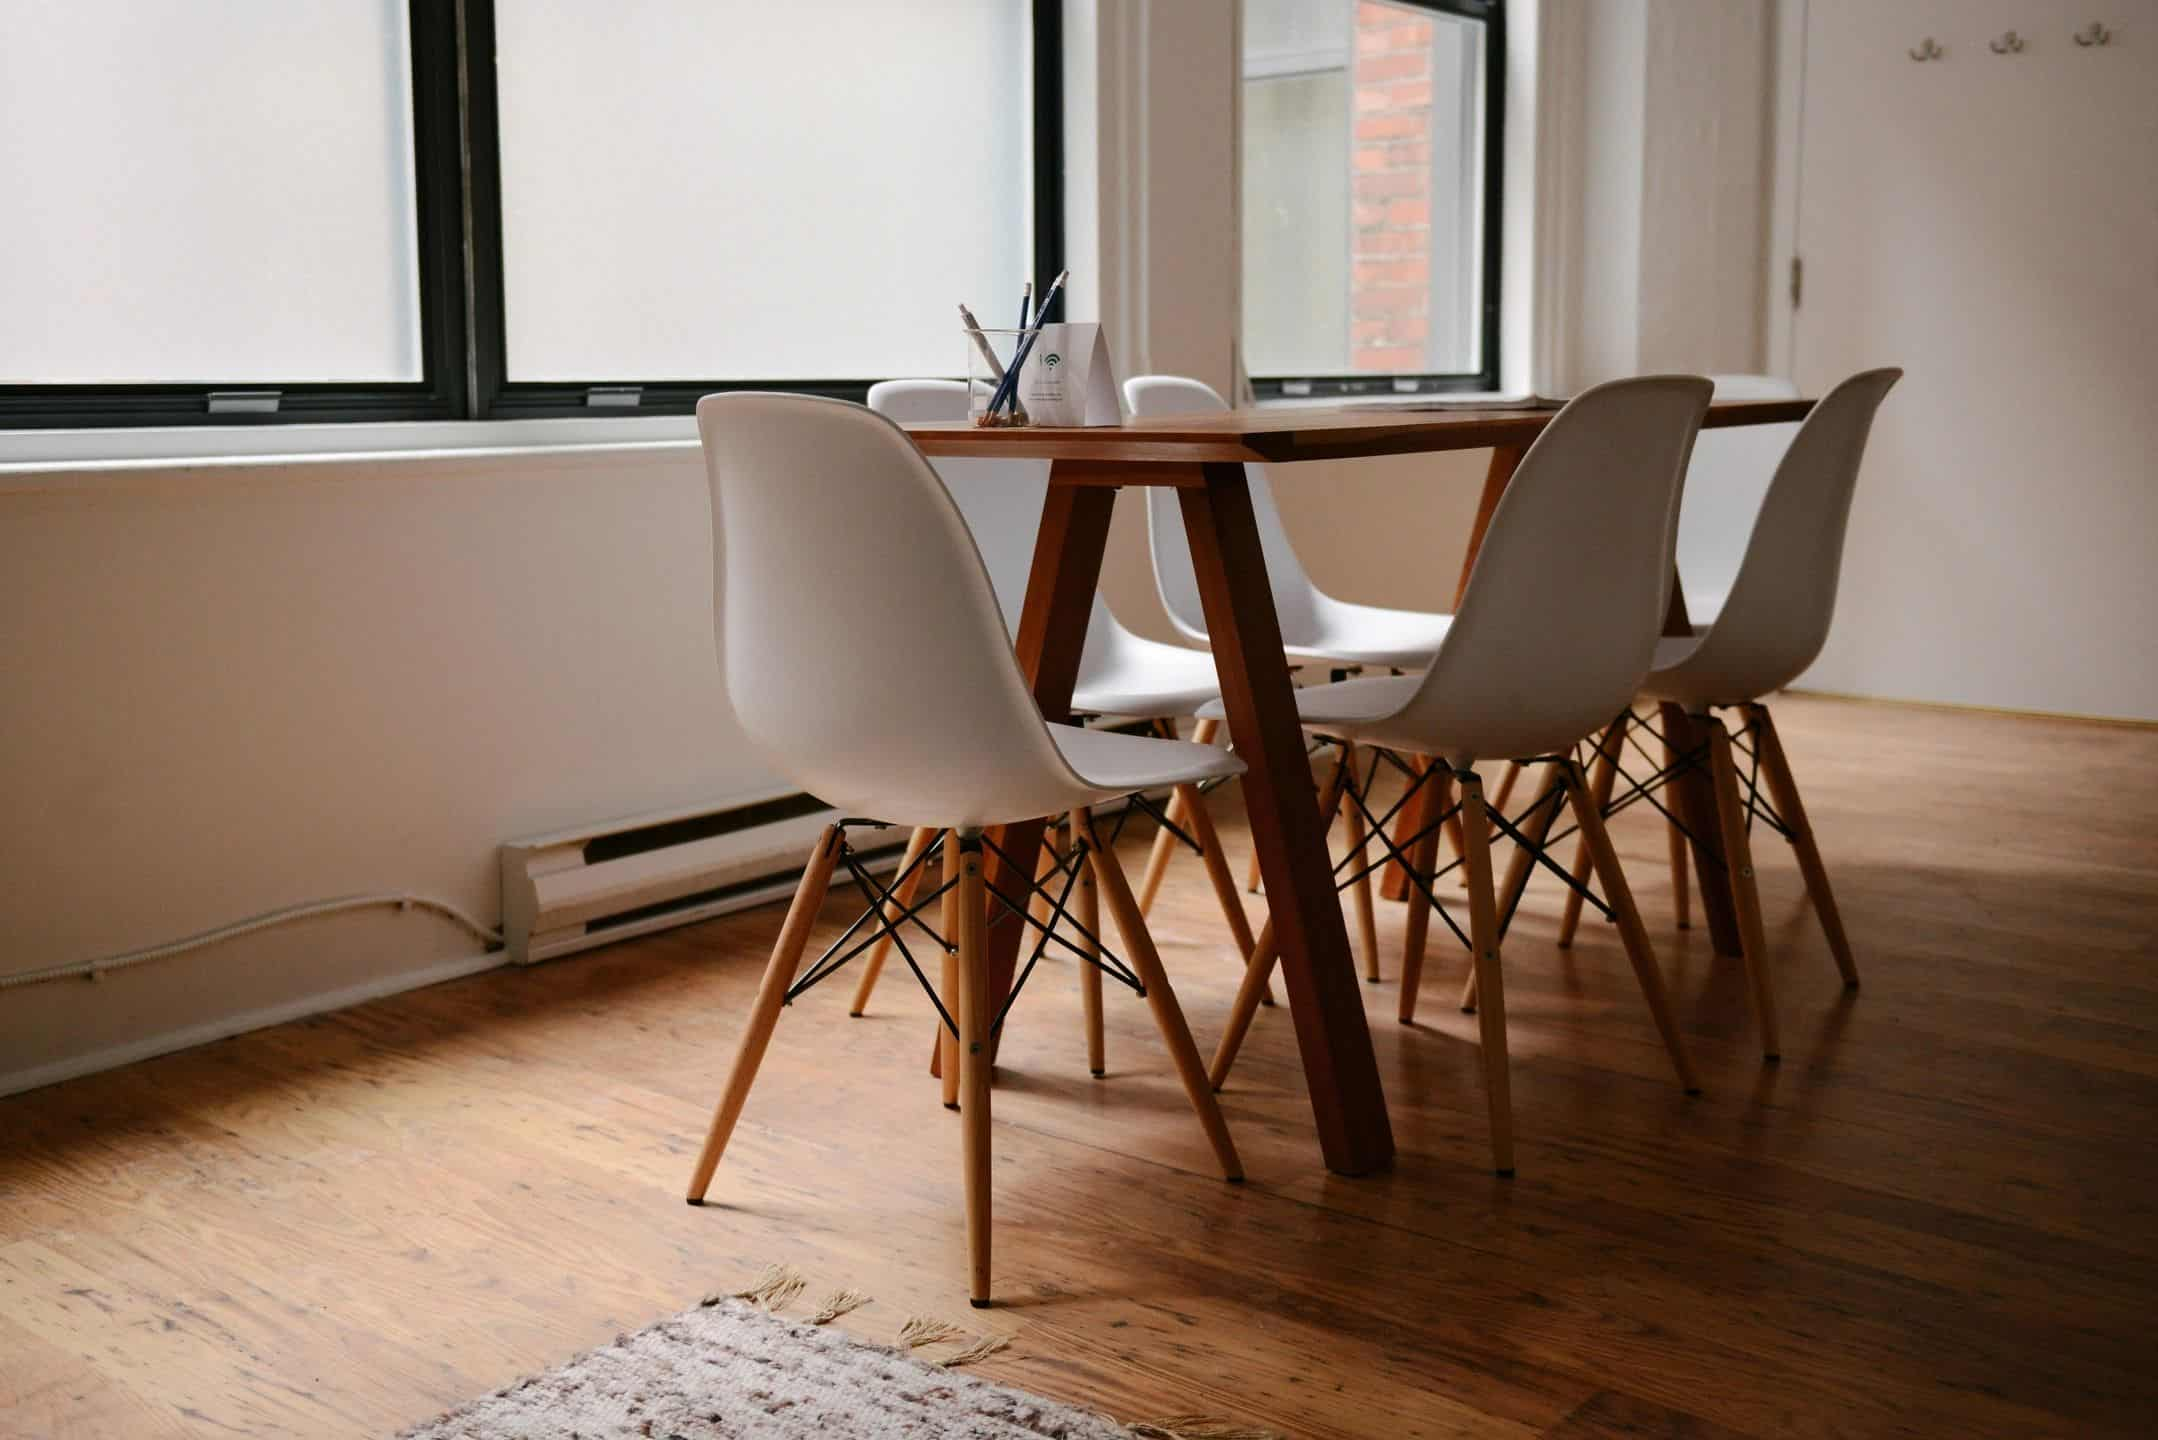 Photograph of a table and chairs